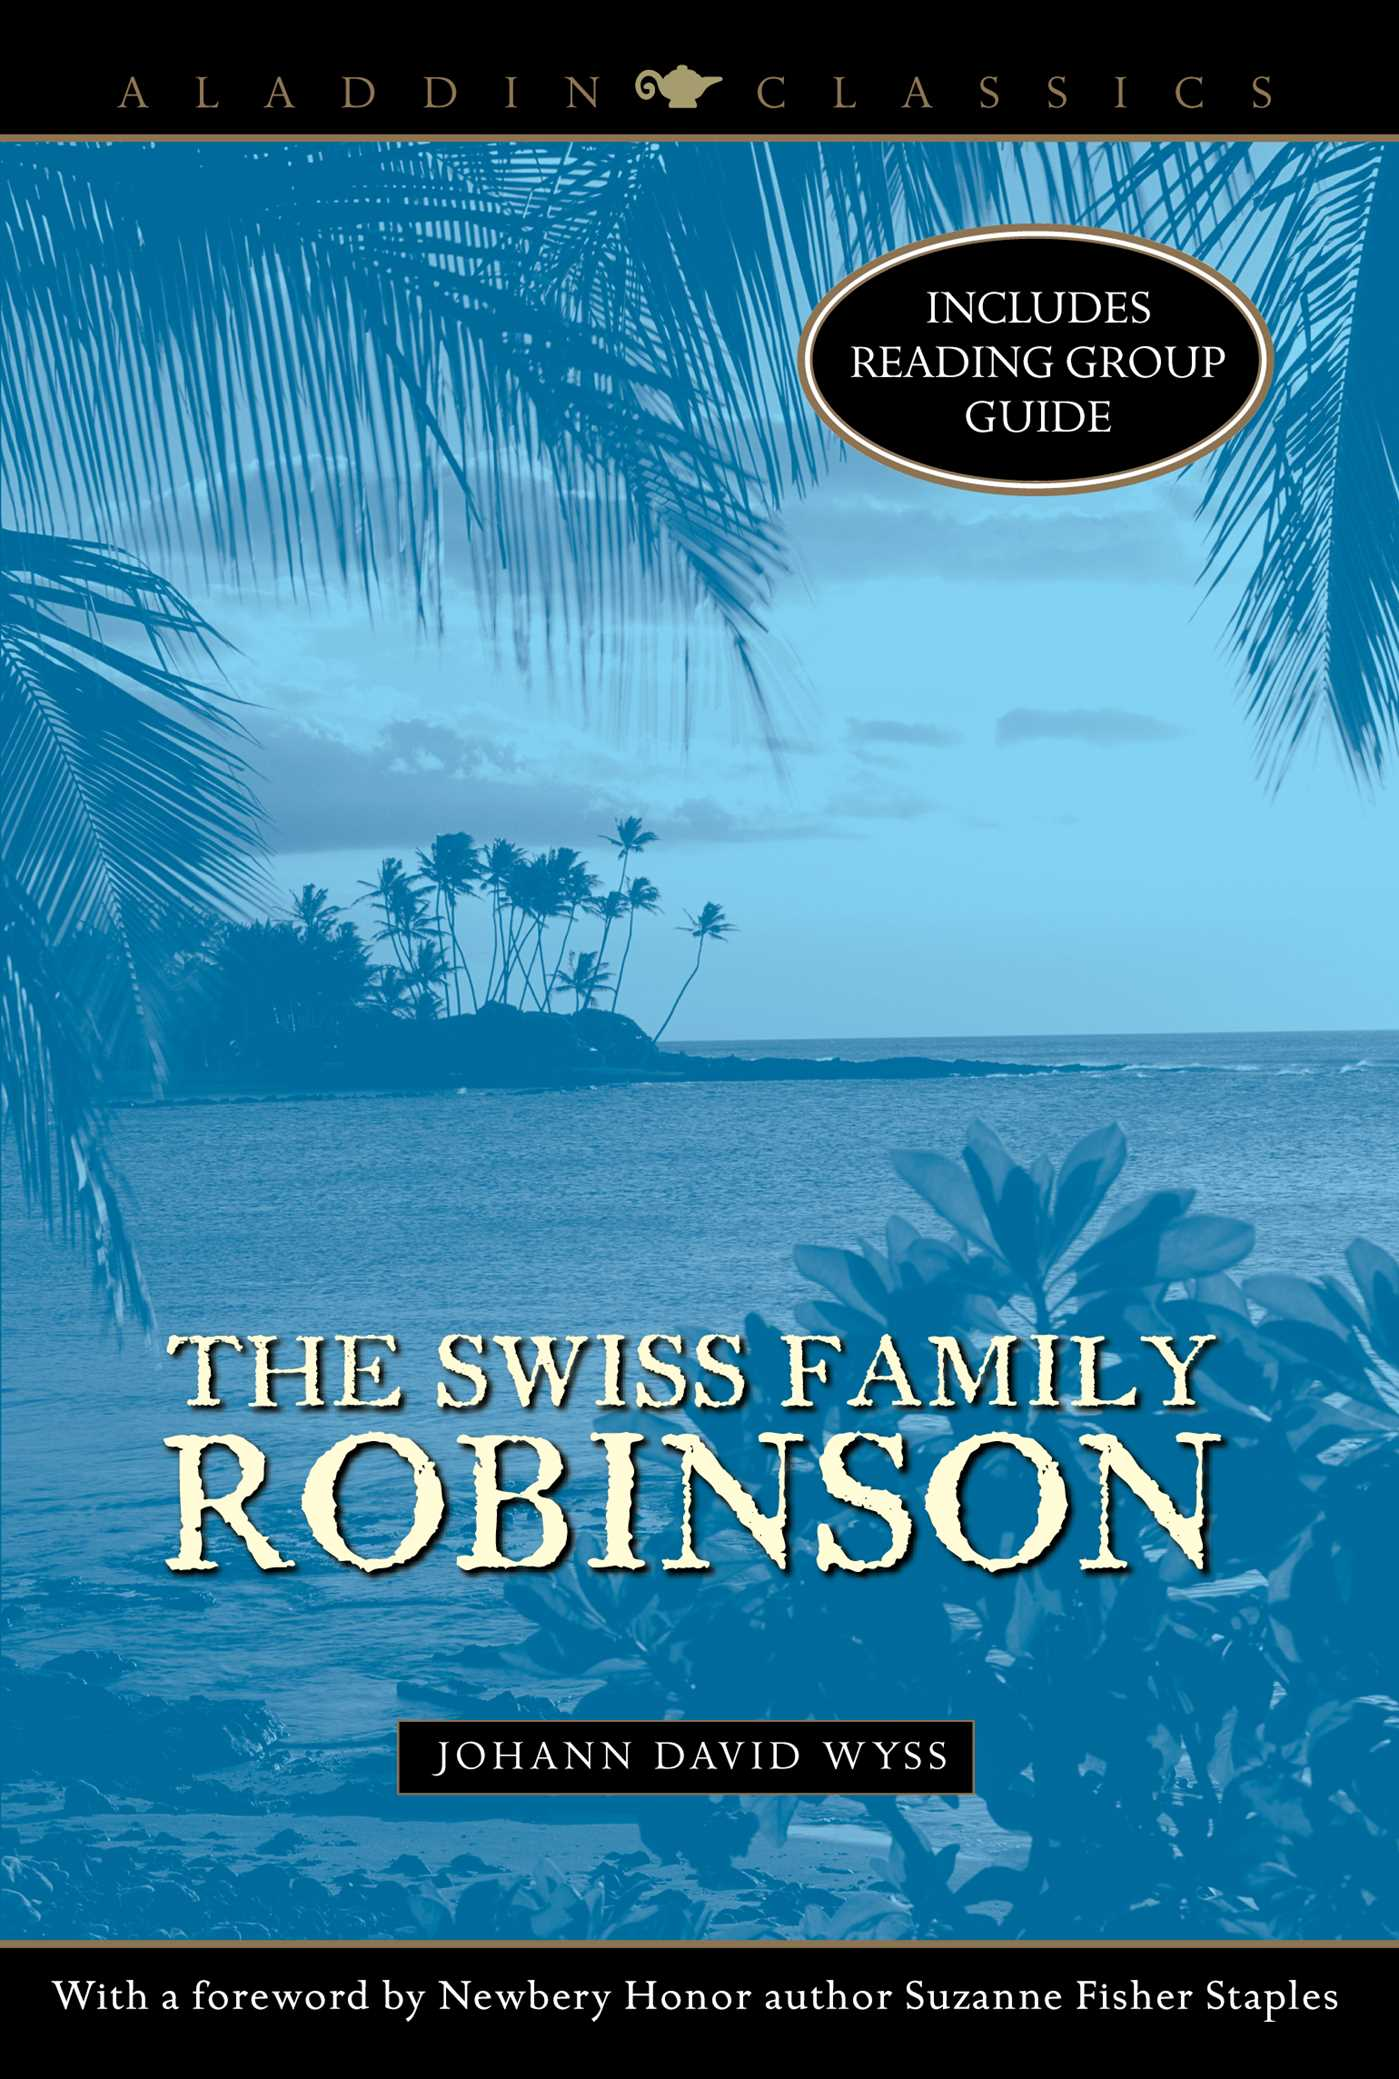 a review of the swiss family robinson by johann david wyss